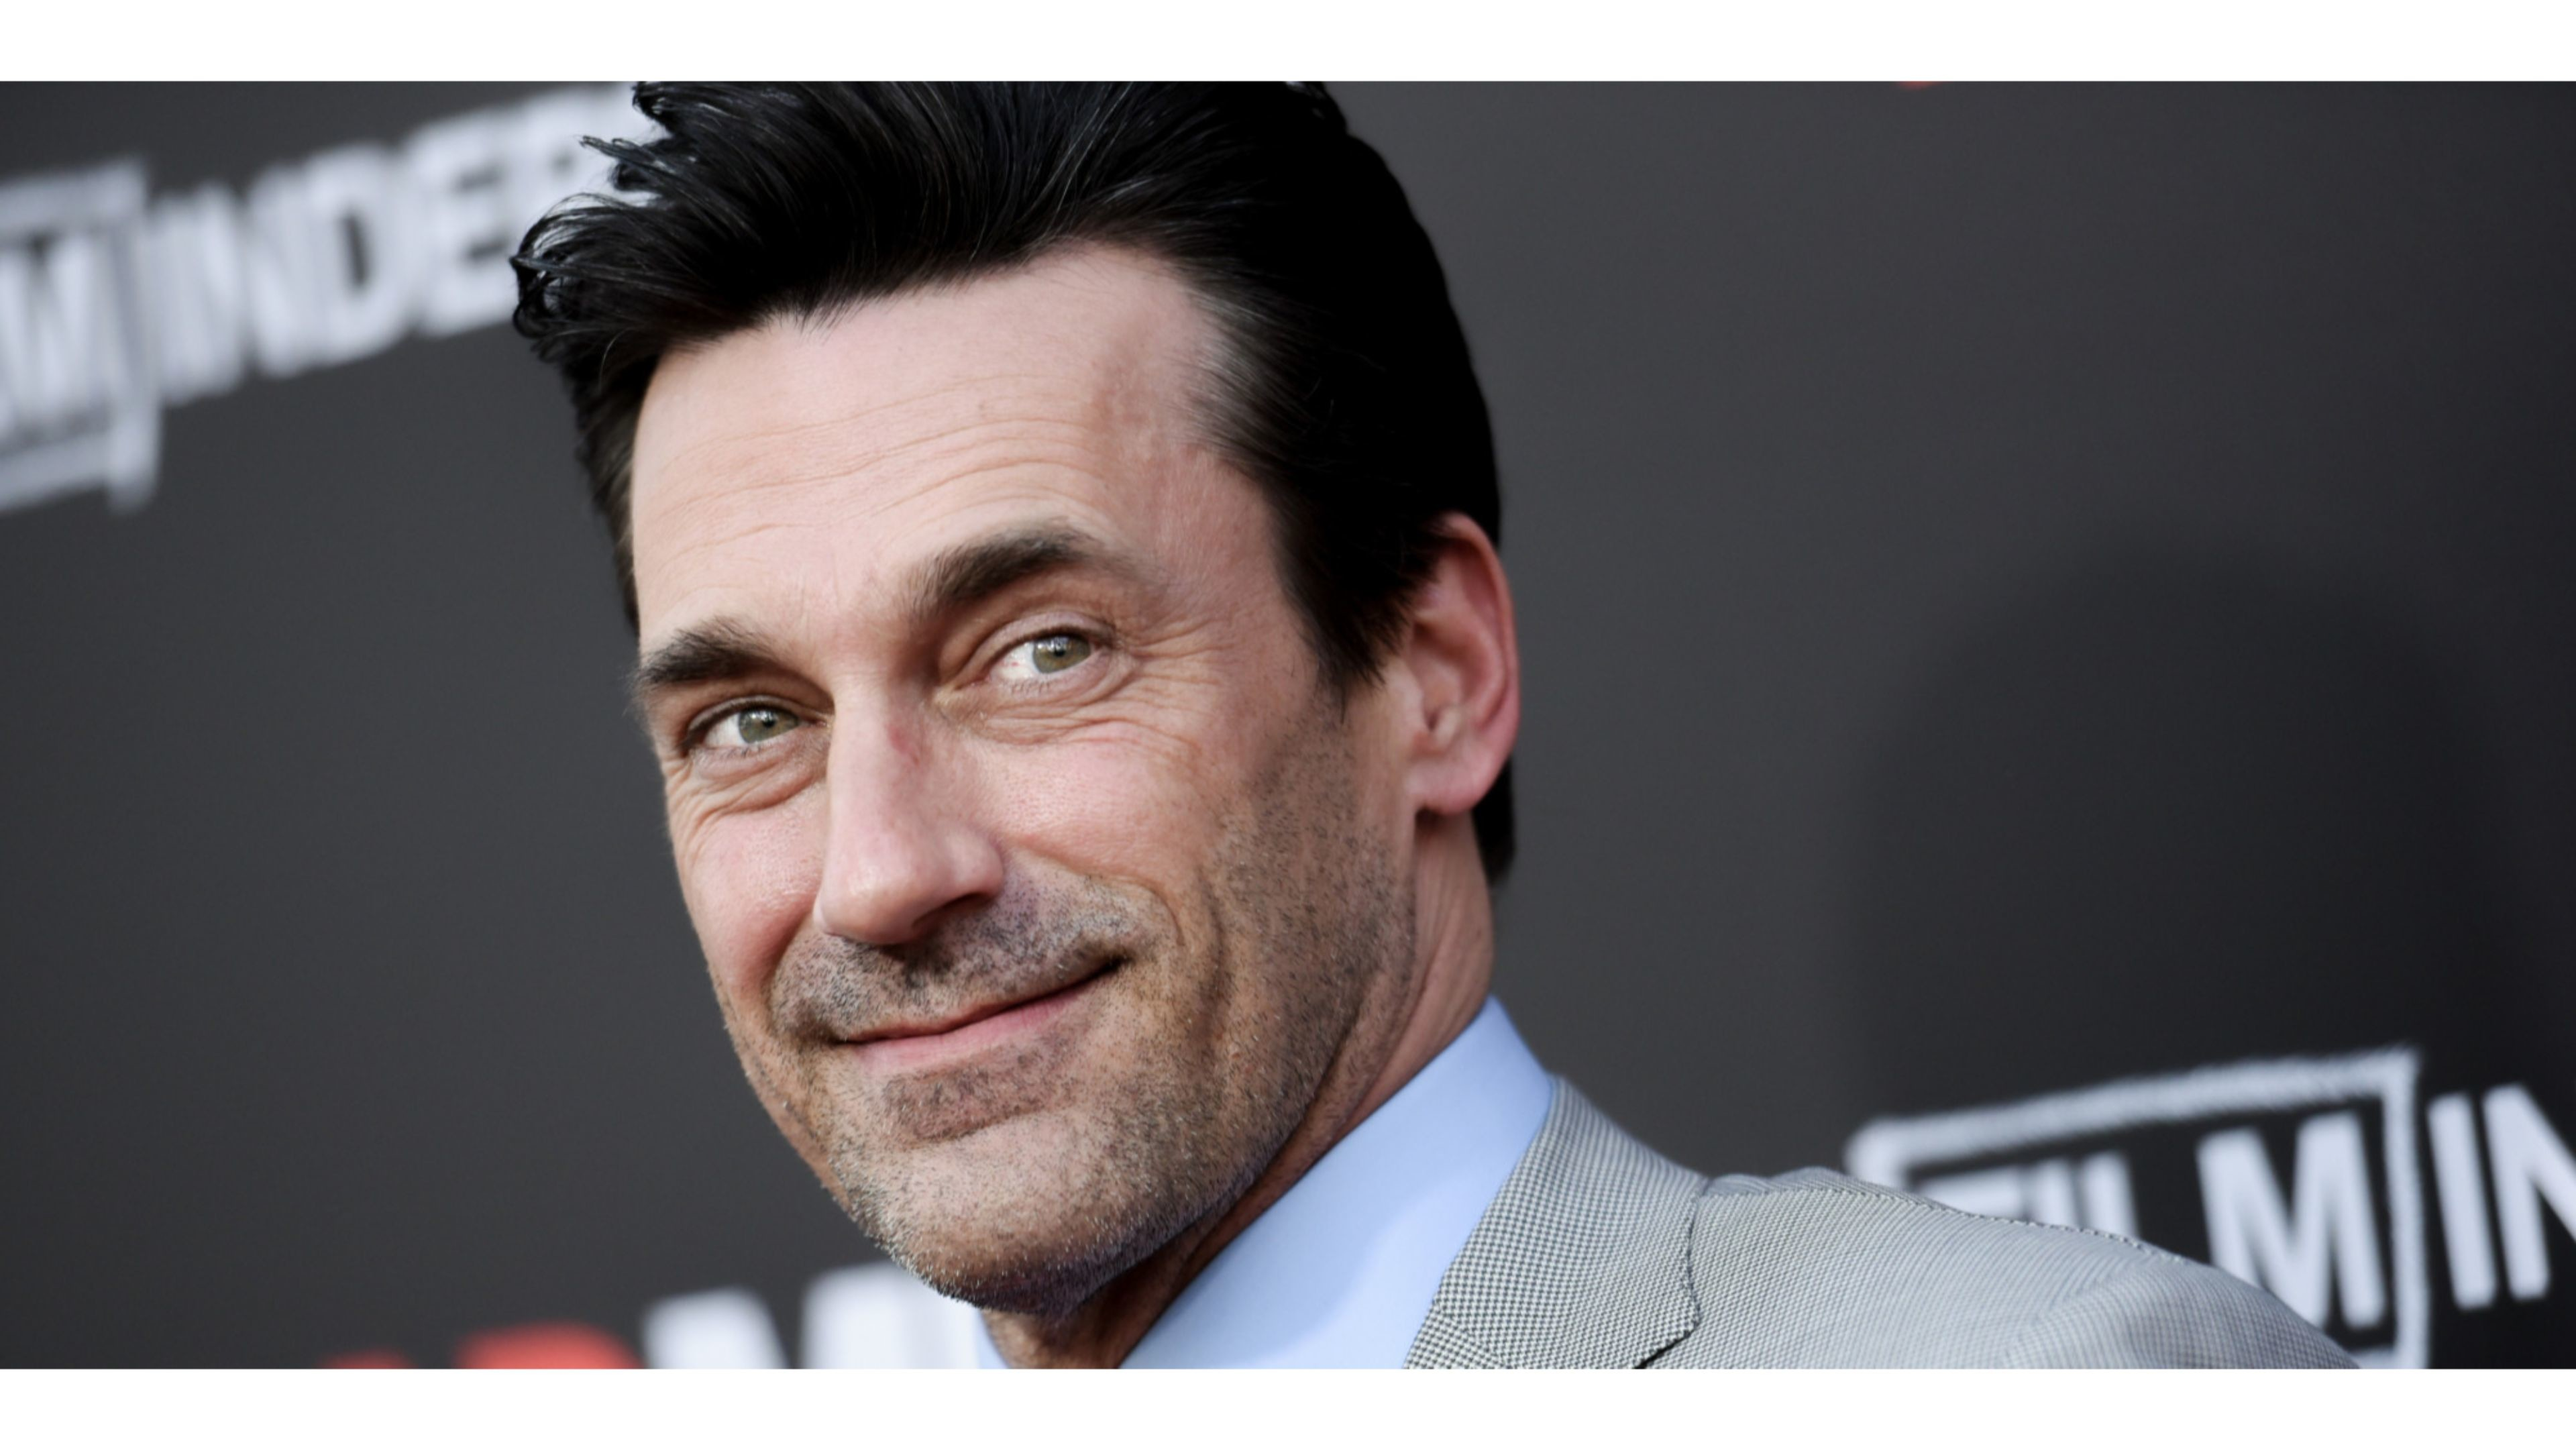 Res: 3840x2160, Download Jon Hamm 4K Wallpapers